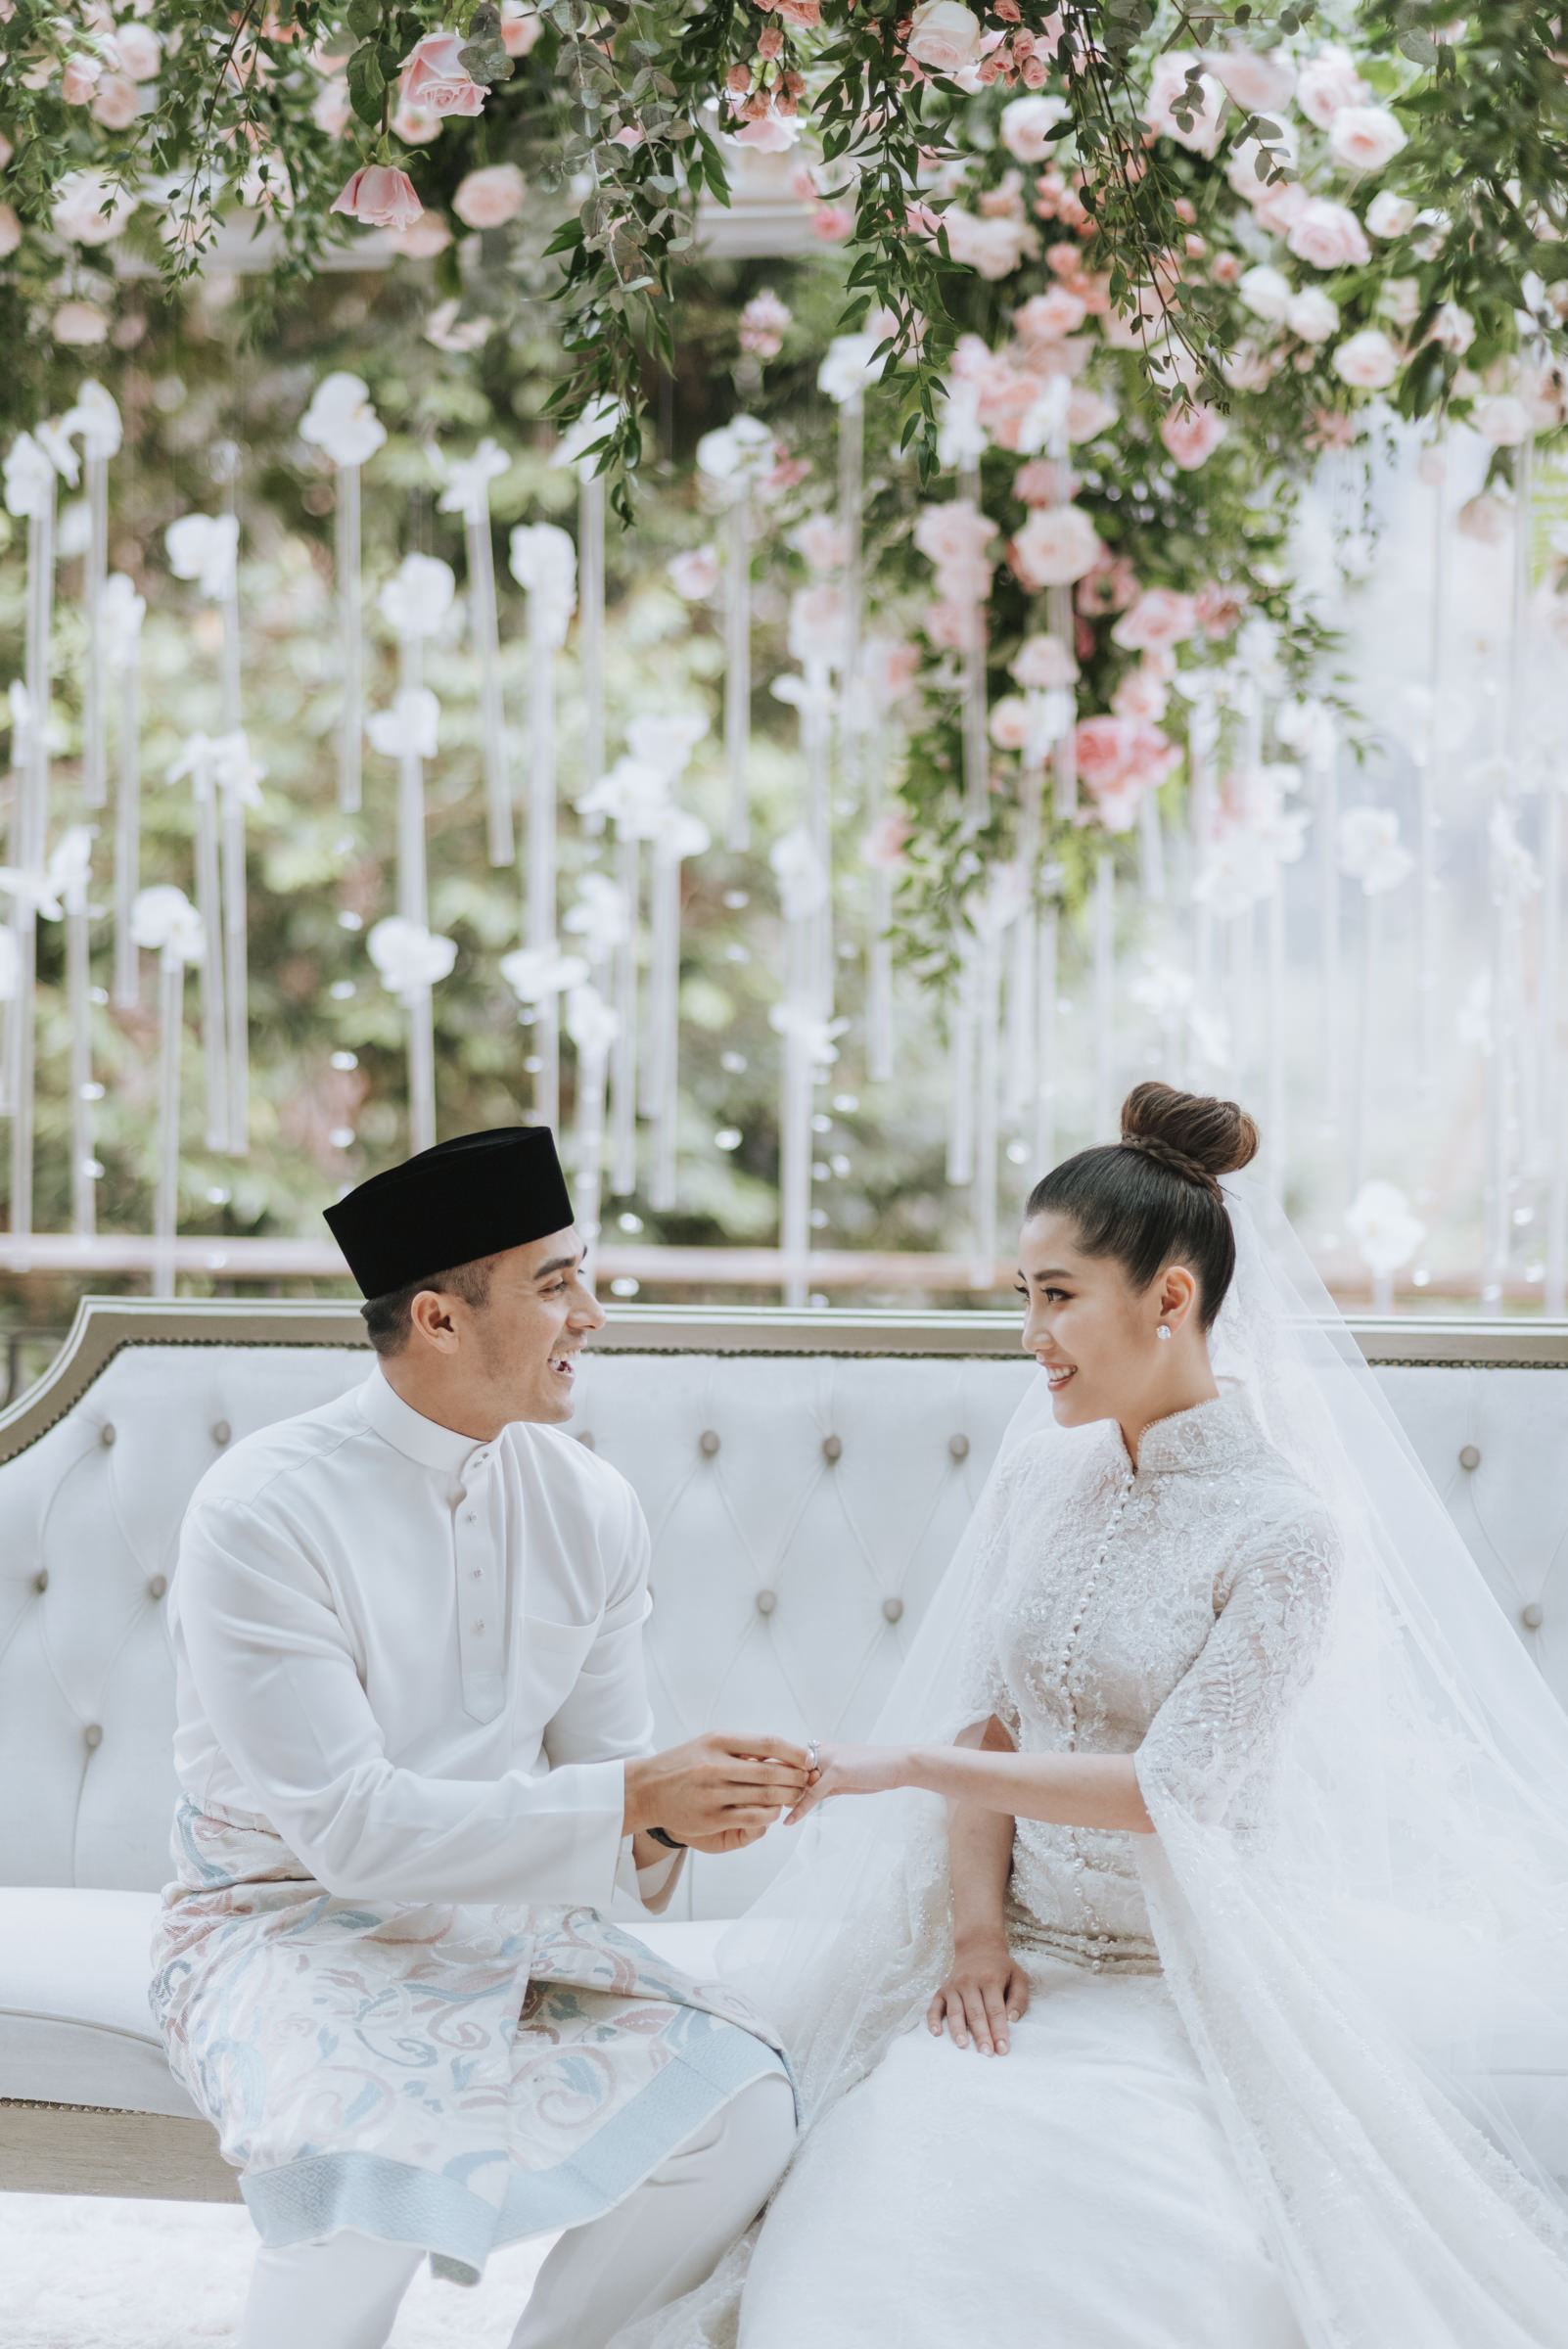 Malaysian bride and groom holding hands - Photo by MunKeat Photography Studio